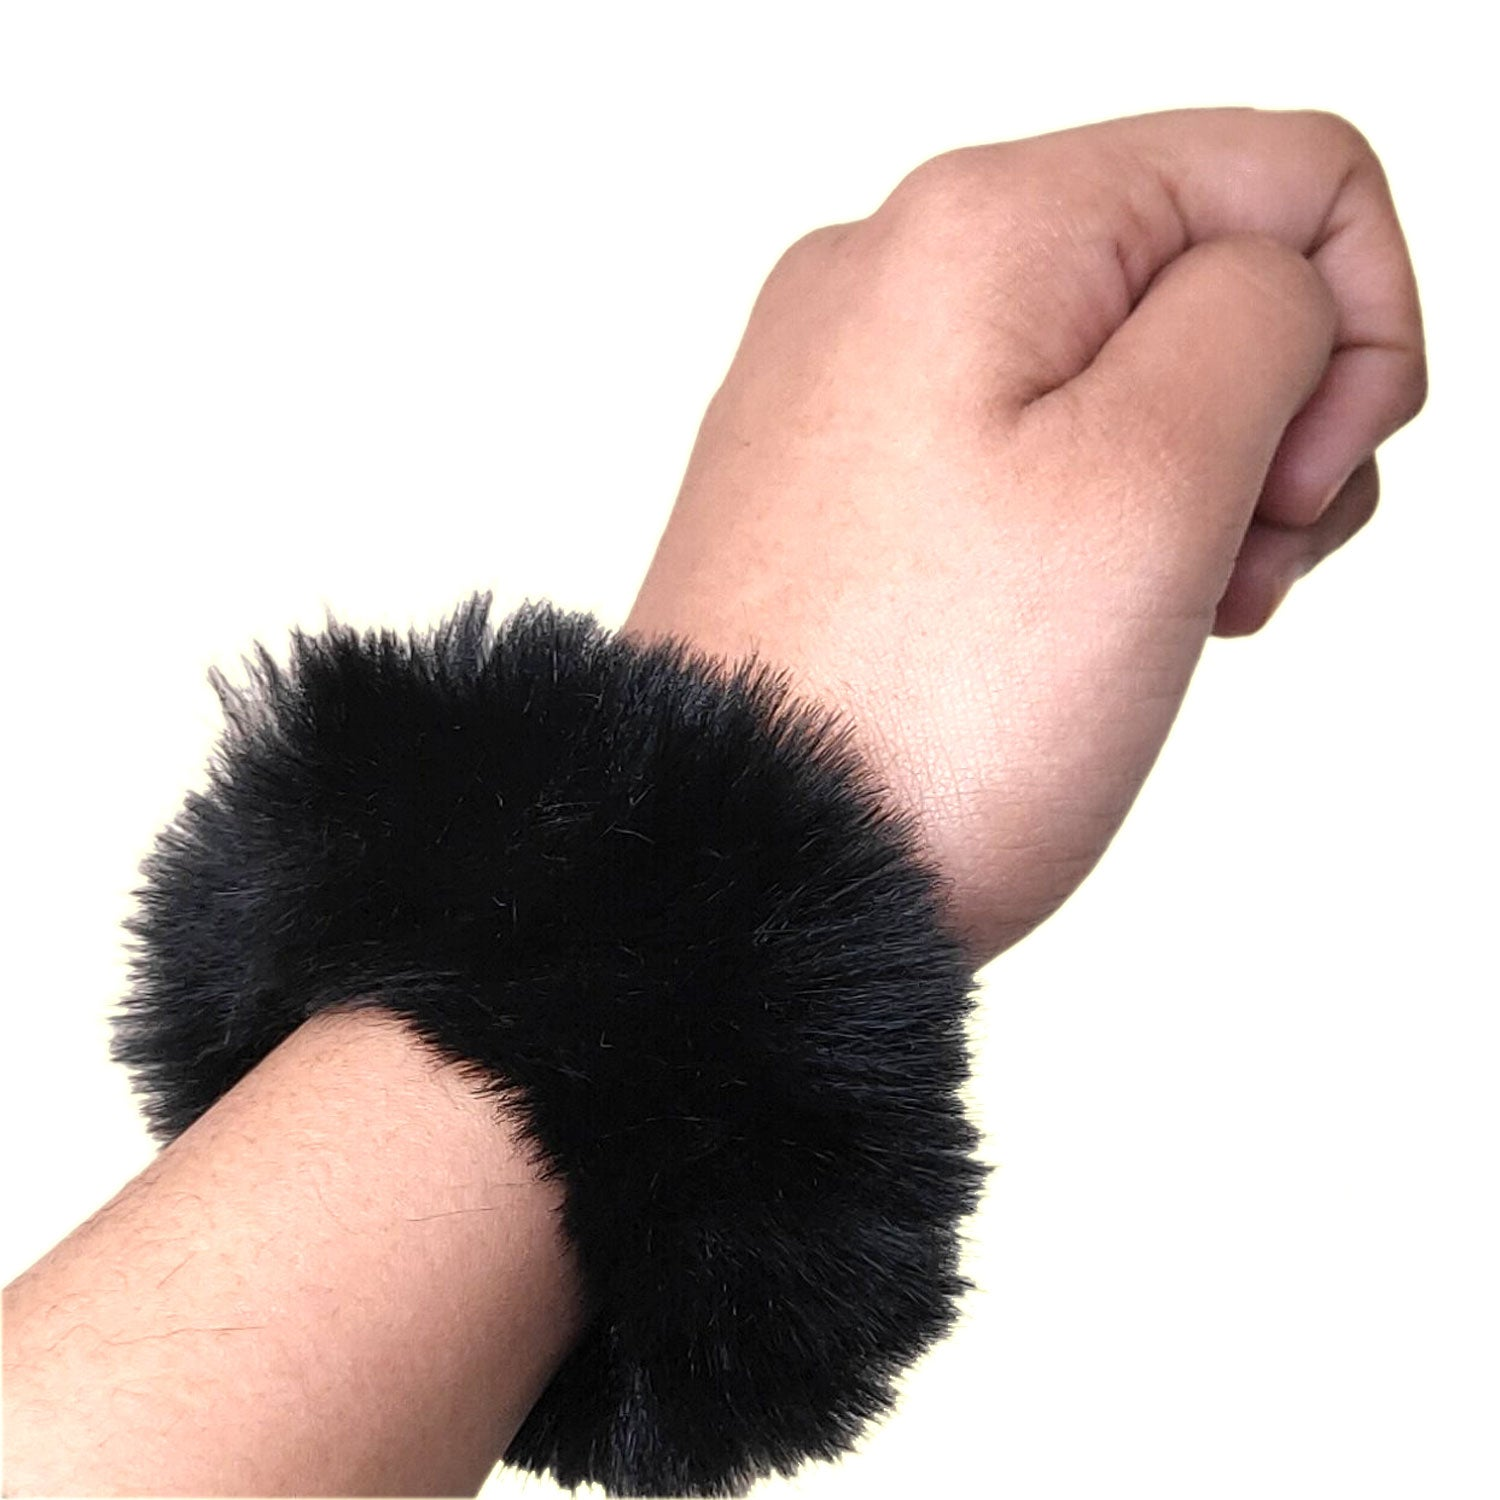 Anokhi Ada Large Size Black Fur Scrunchie for Girls and Women (ZG-42 Scrunchie)